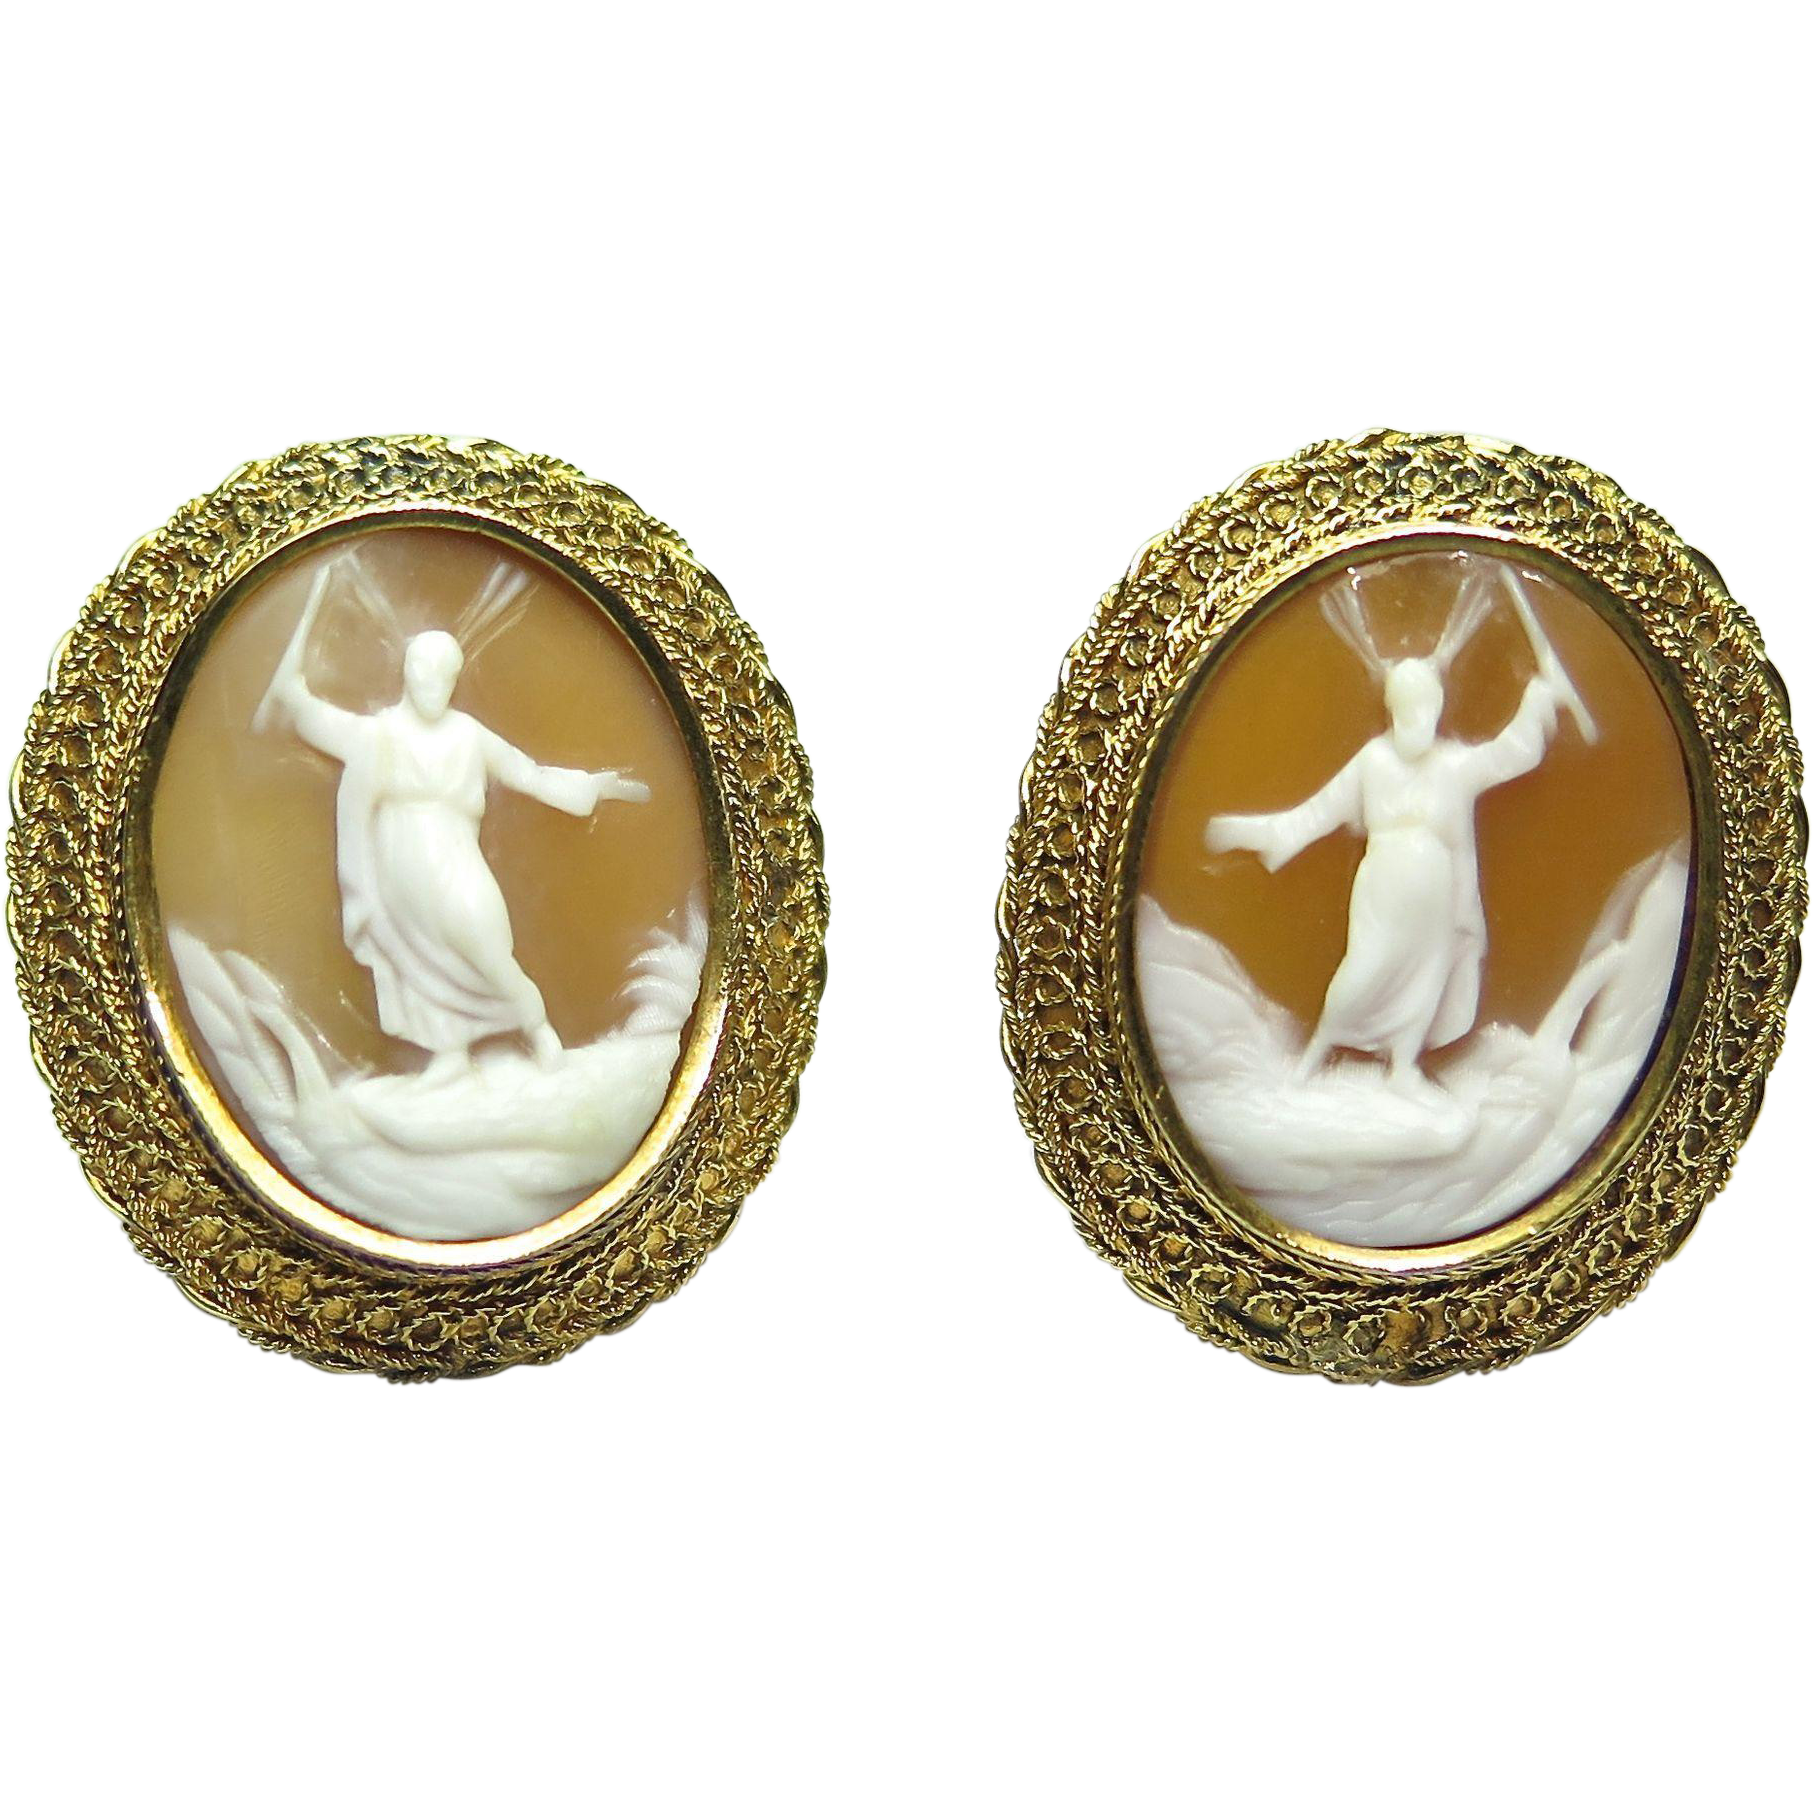 Vintage 14K Gold Trabert & Hoeffer-Maubossin Moses Cameo Earrings